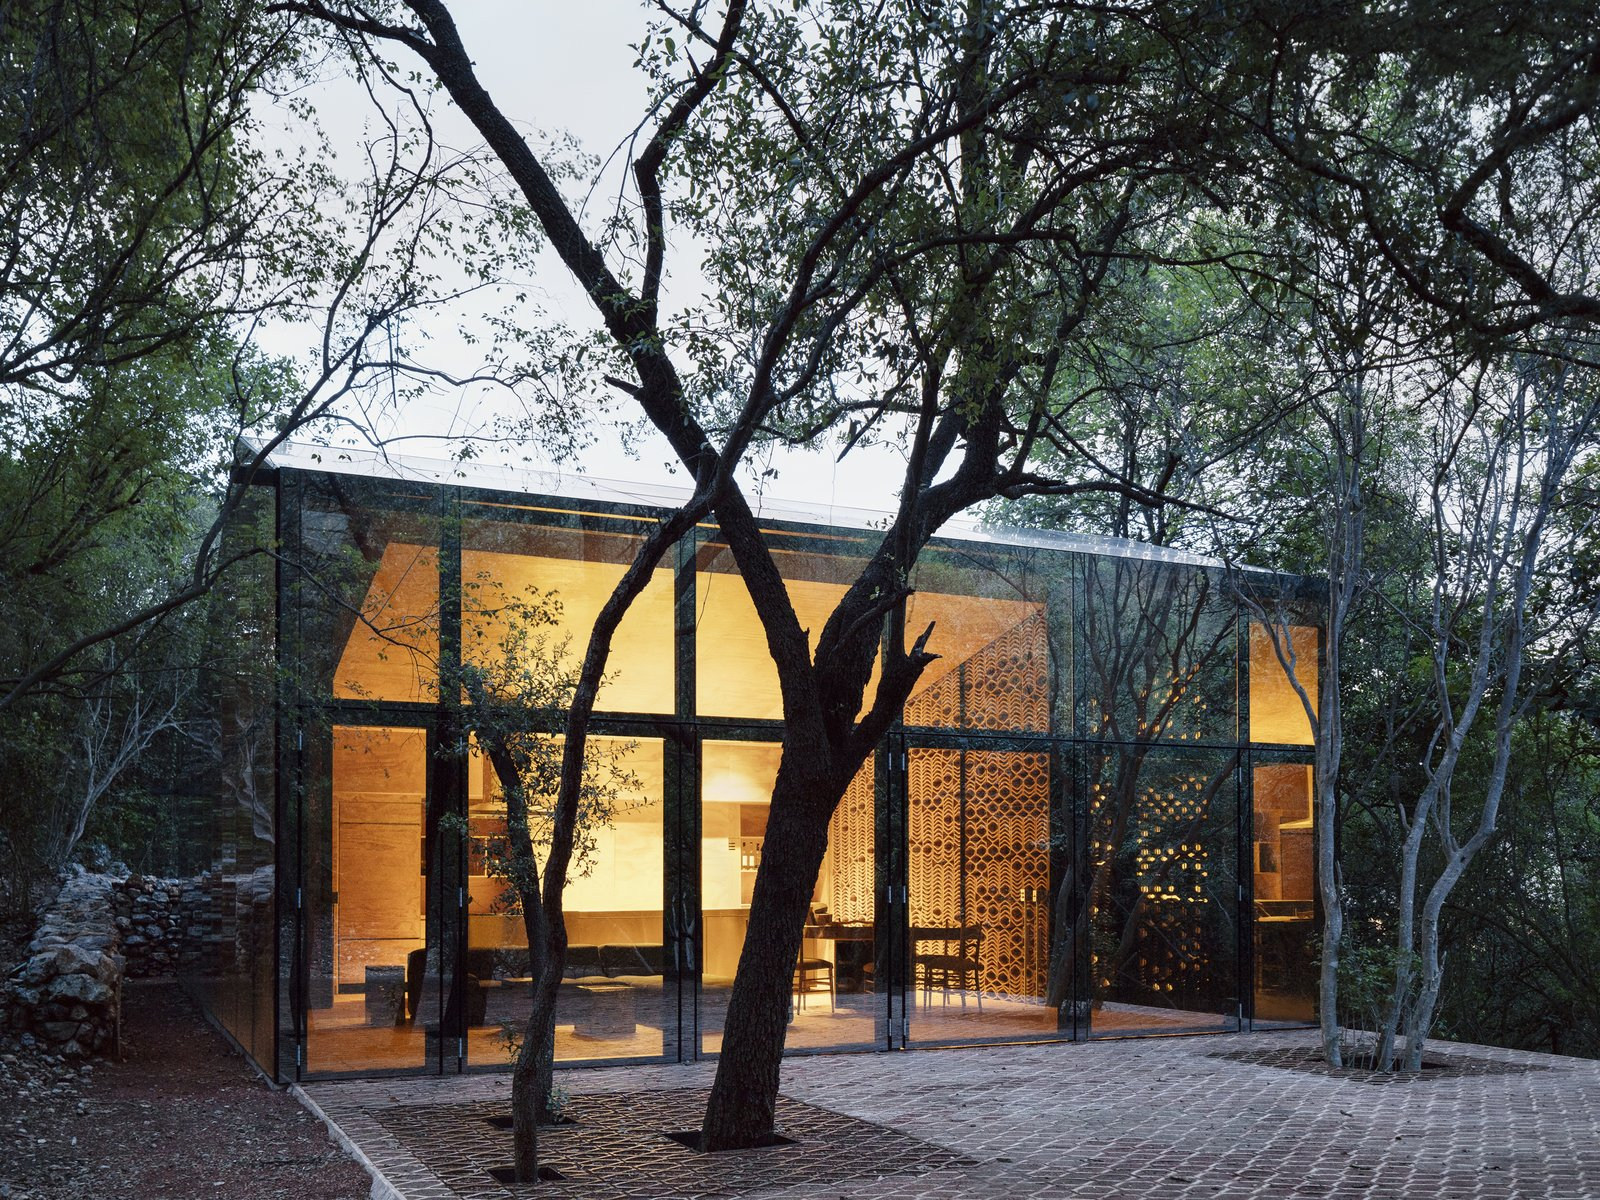 A Mirrored Mexican Home Hides Among a Lush Forest